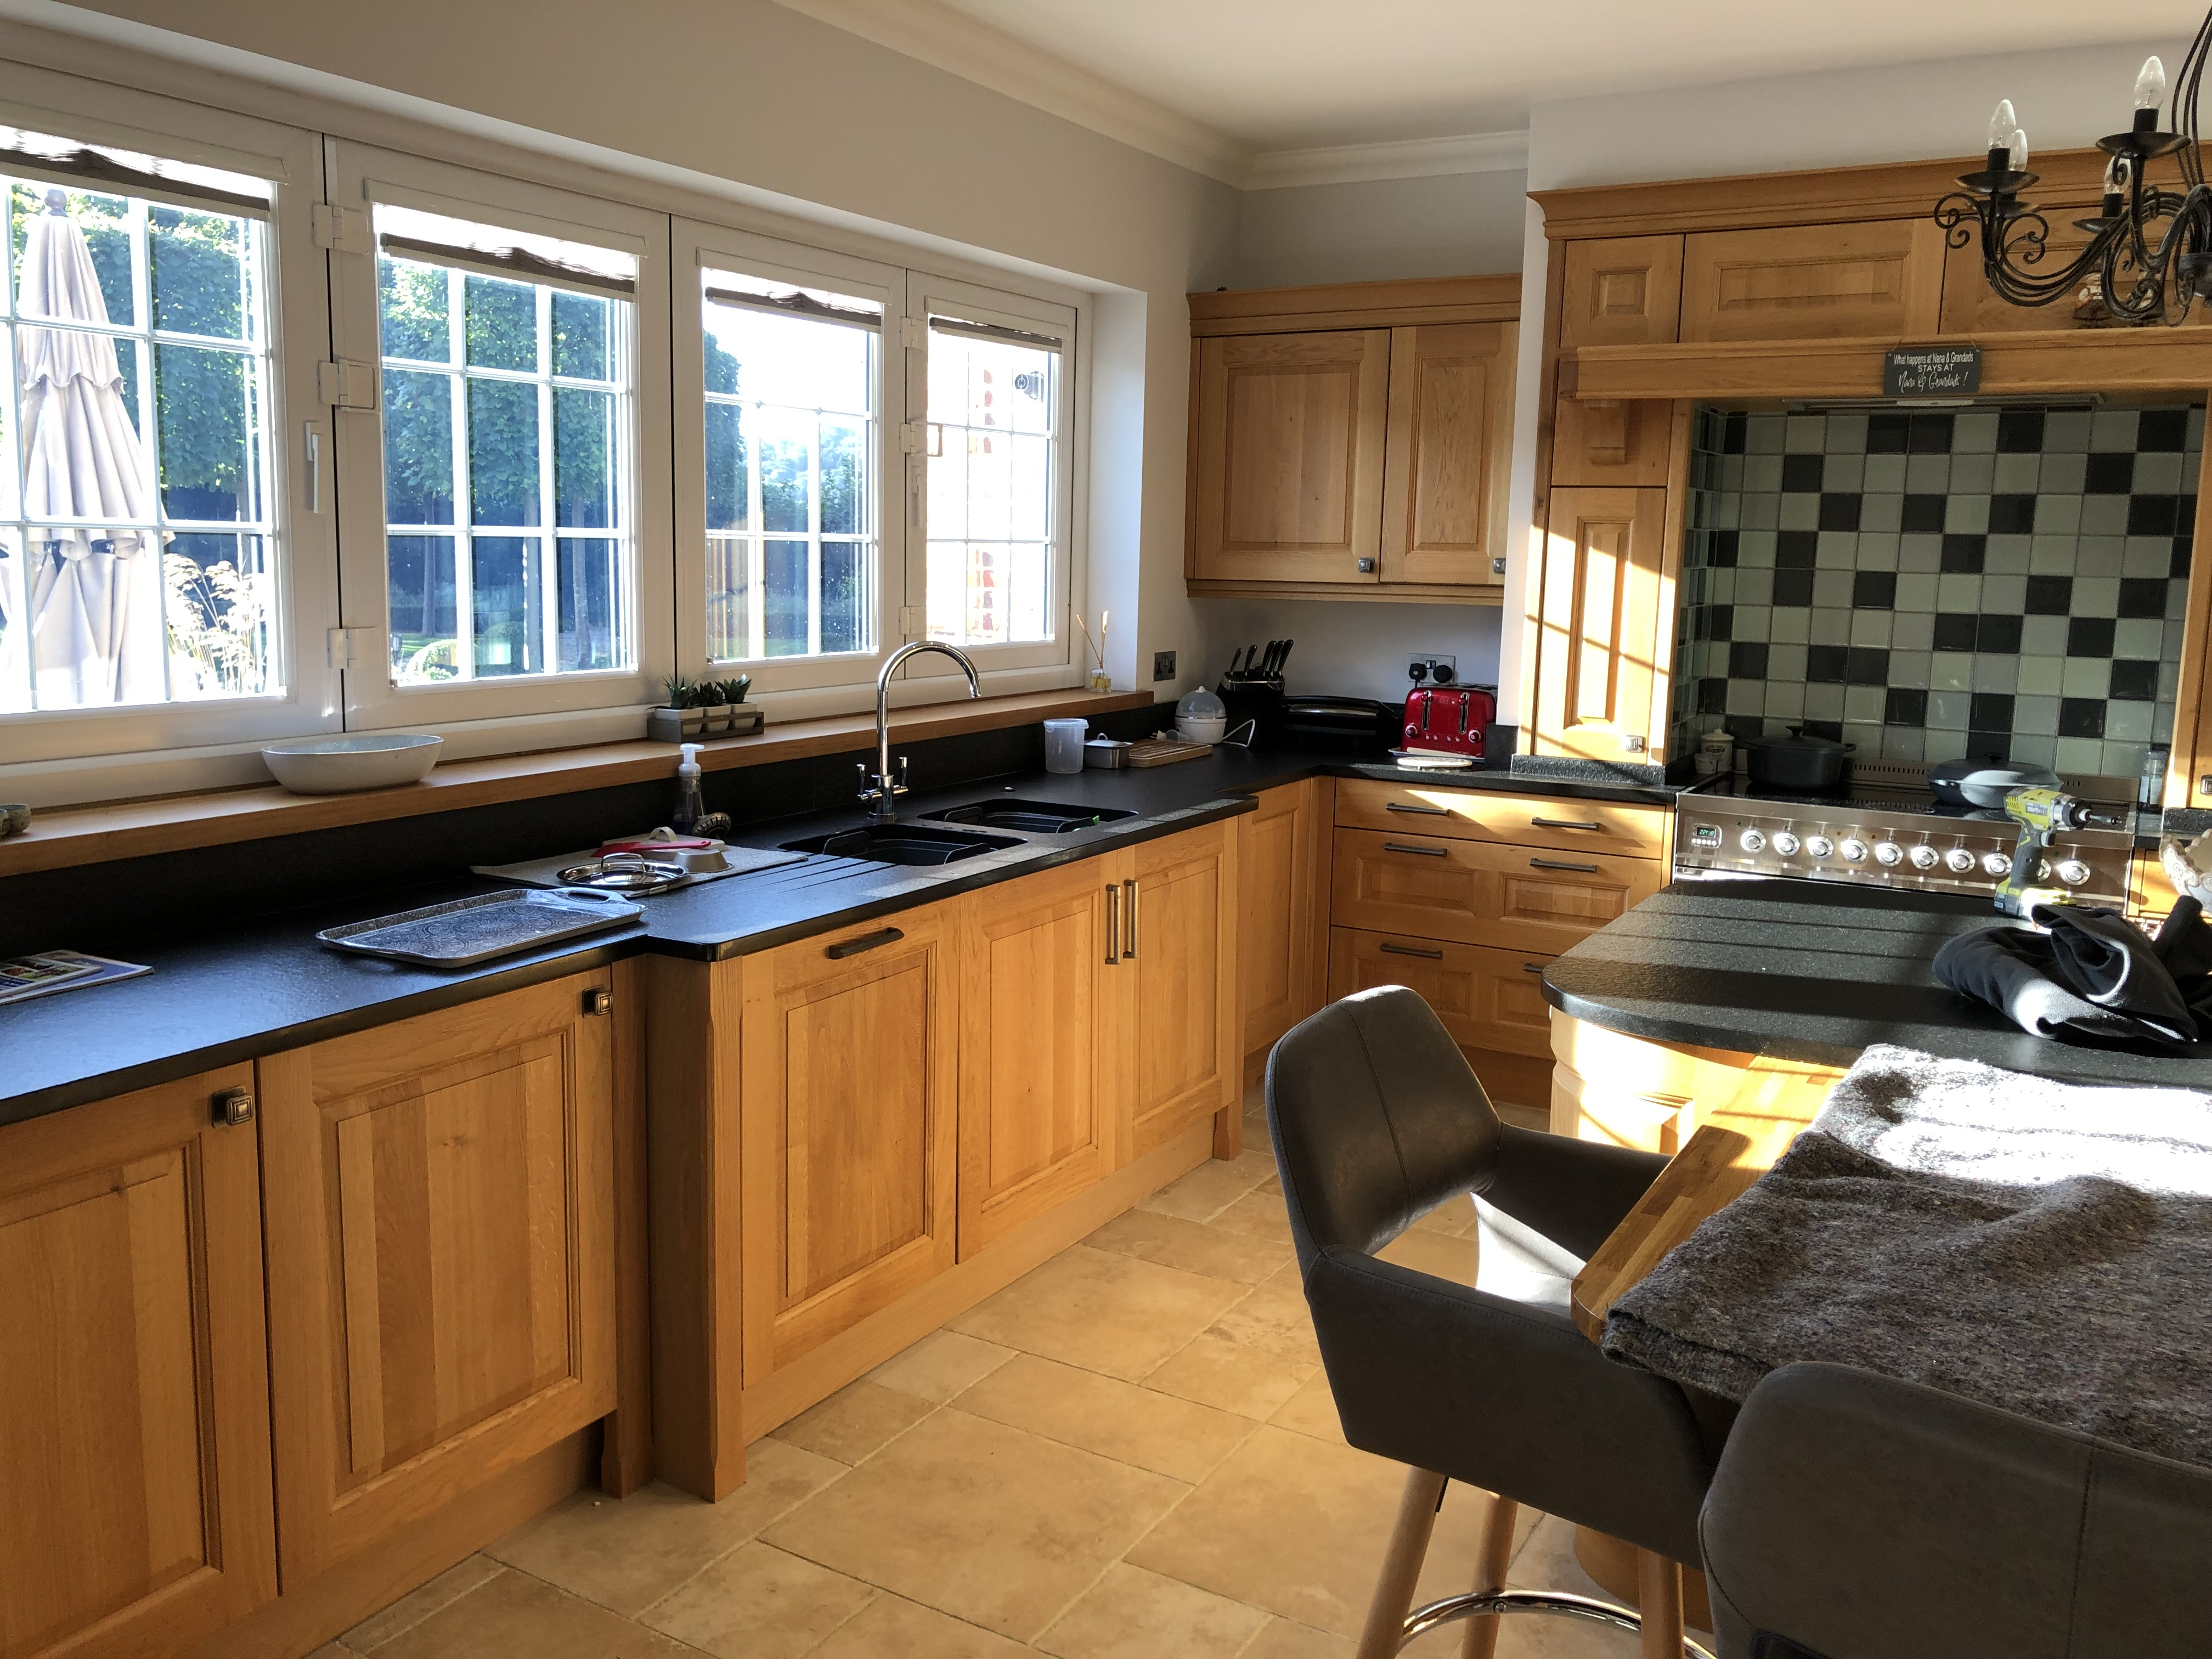 Kitchen Painting Specialists Swindon Wiltshire